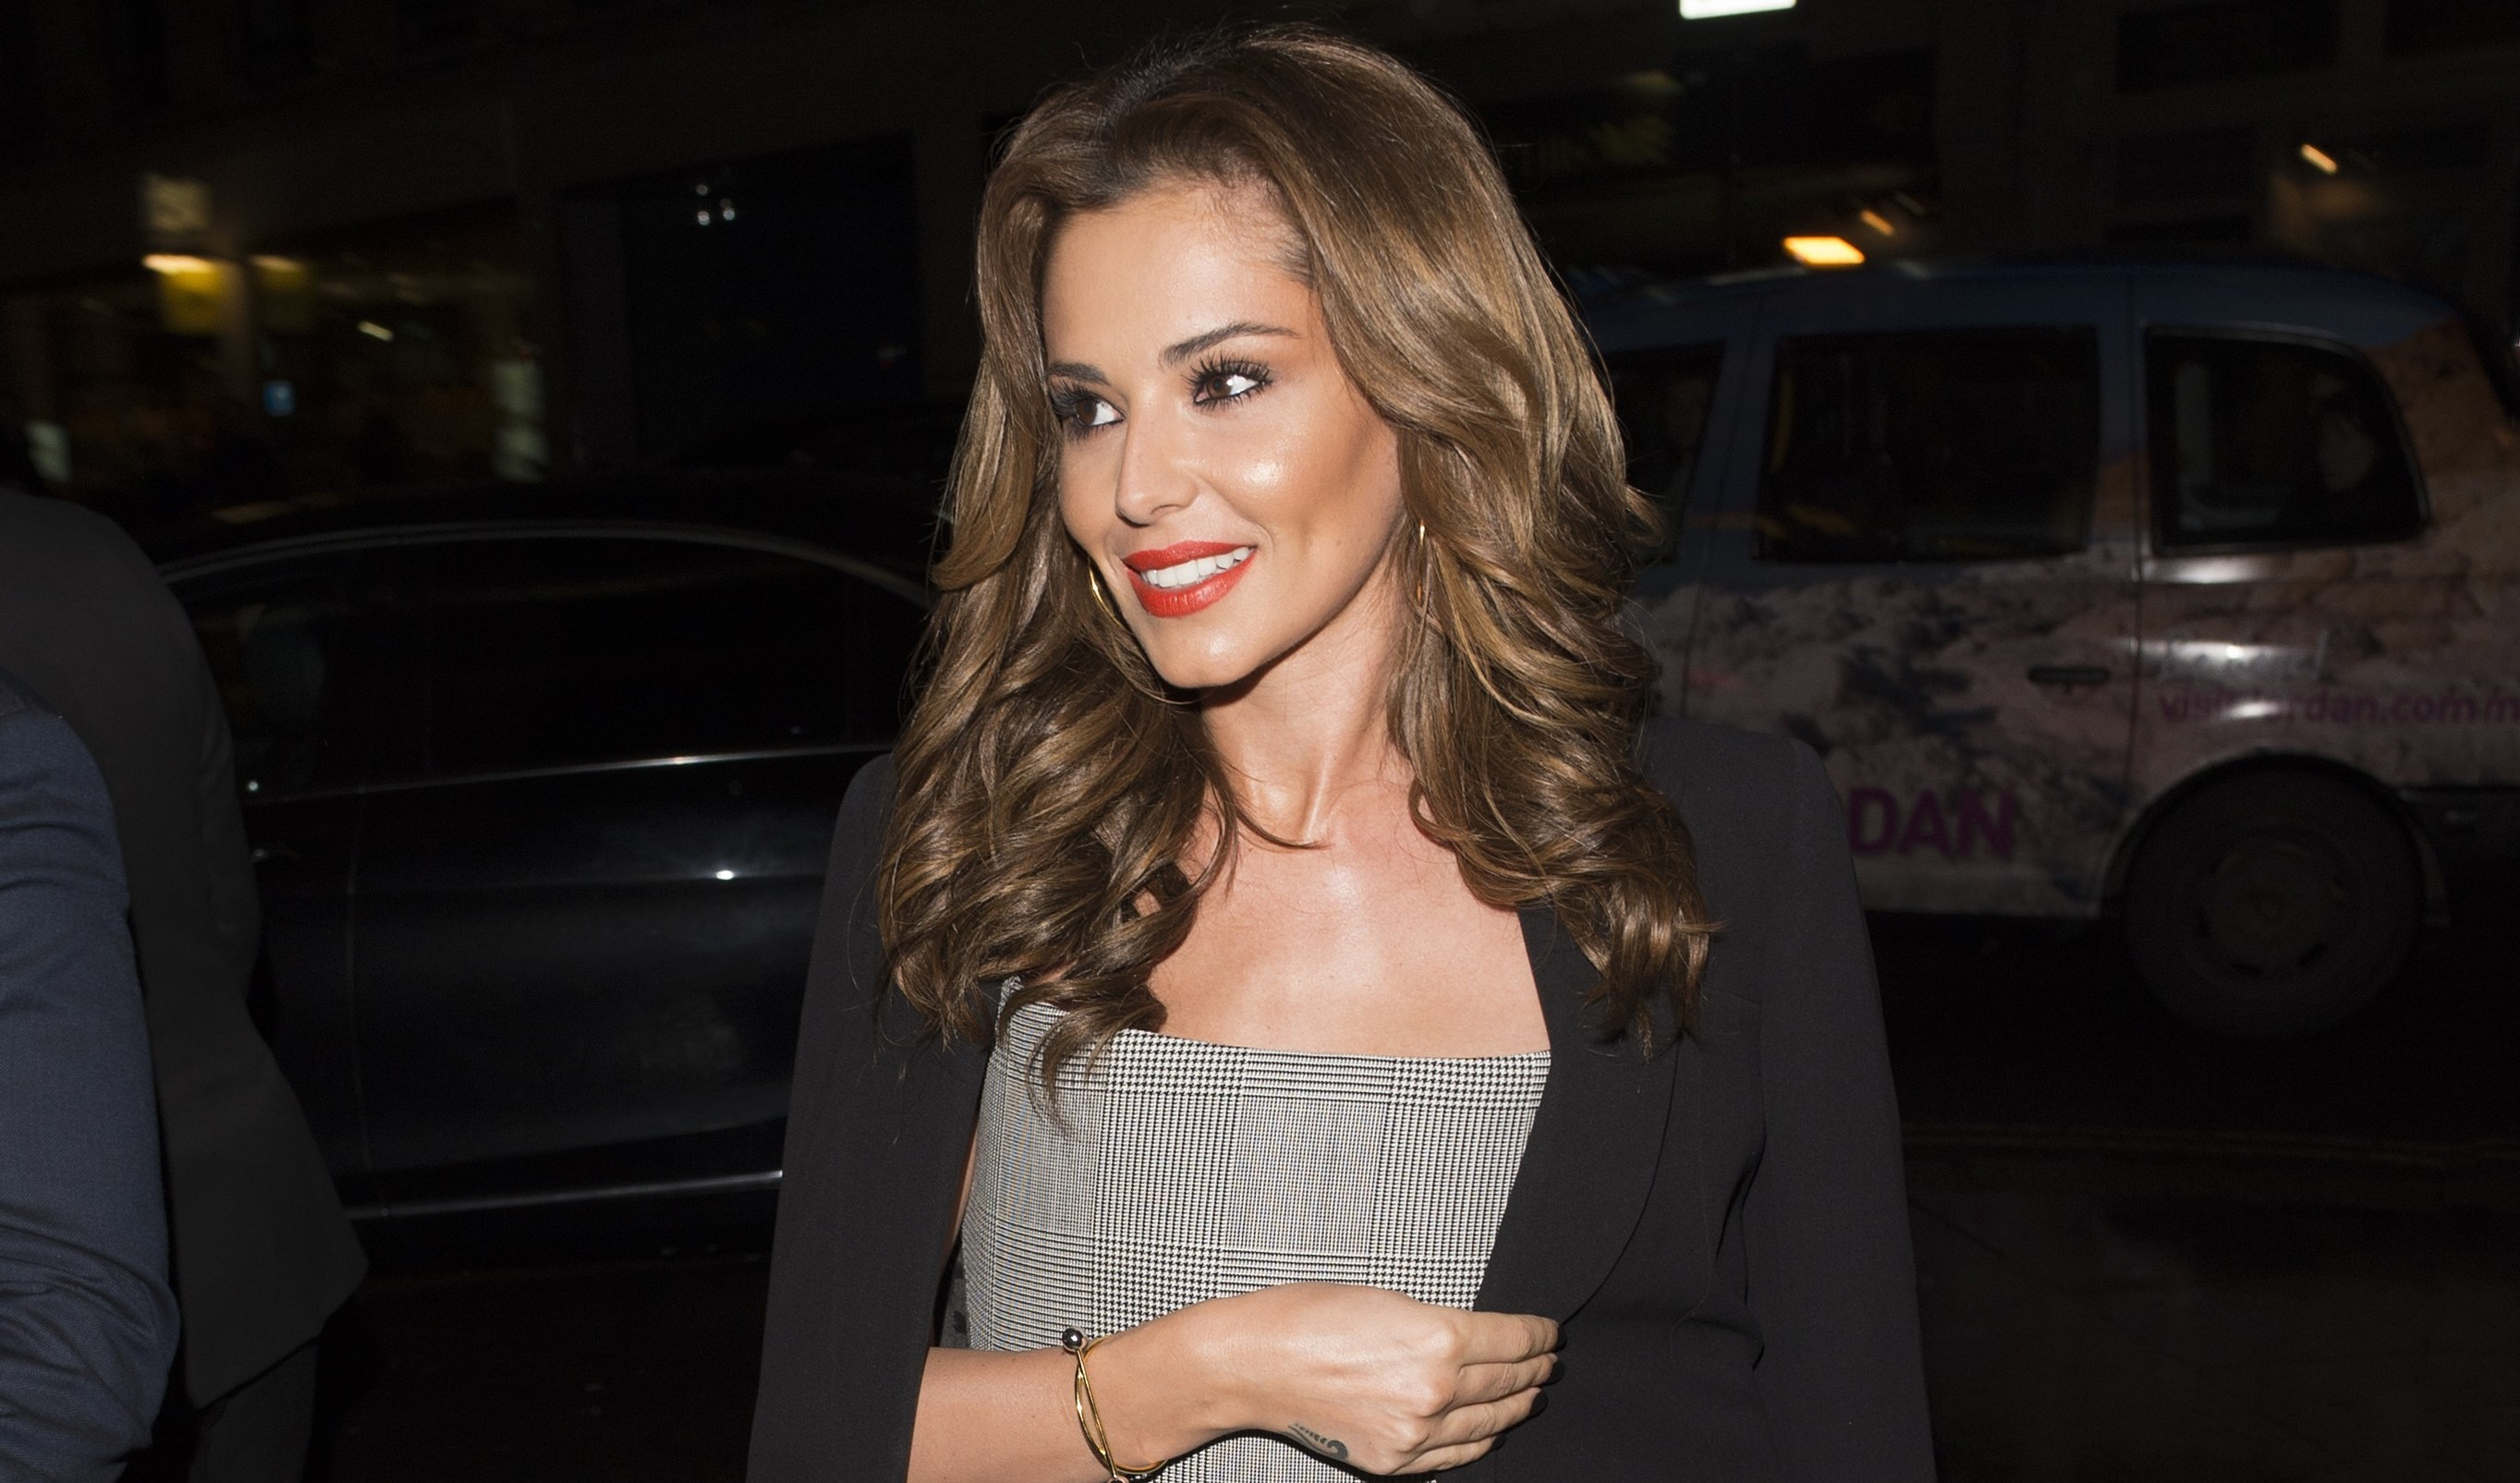 Finally! The first picture of Cheryl since she gave birth to Bear